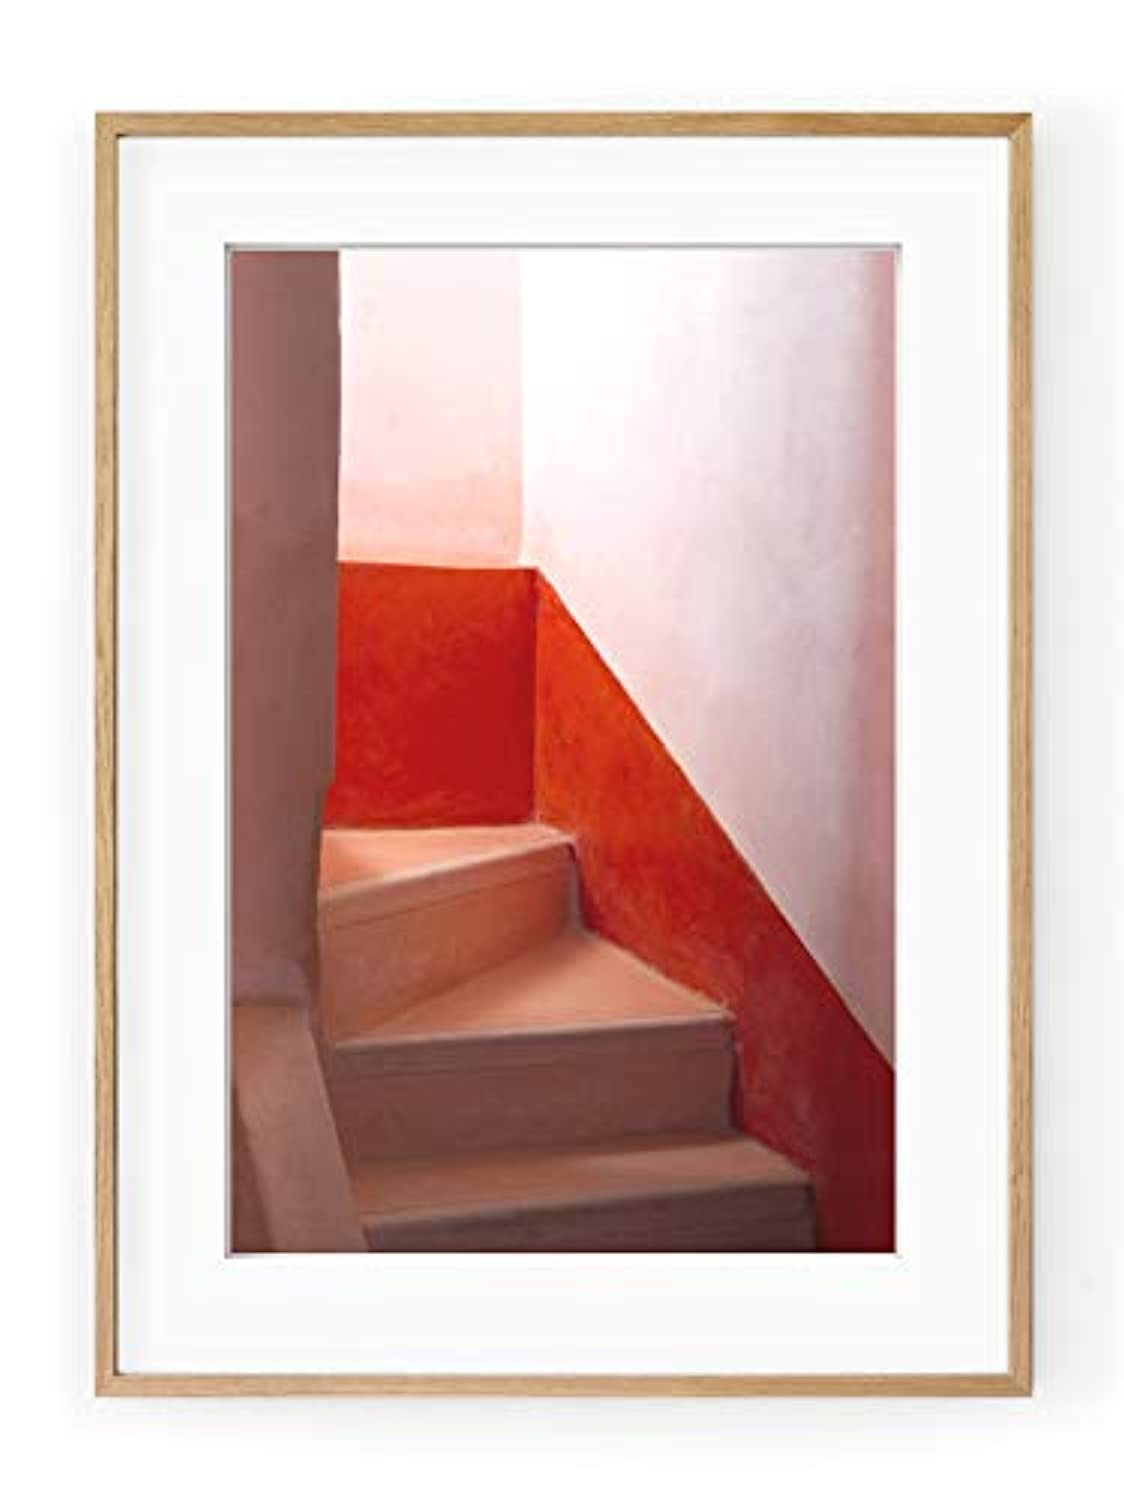 Moroccan Staircase, White Lacquered Wood Frame, with Mount, Multicolored, 50x70